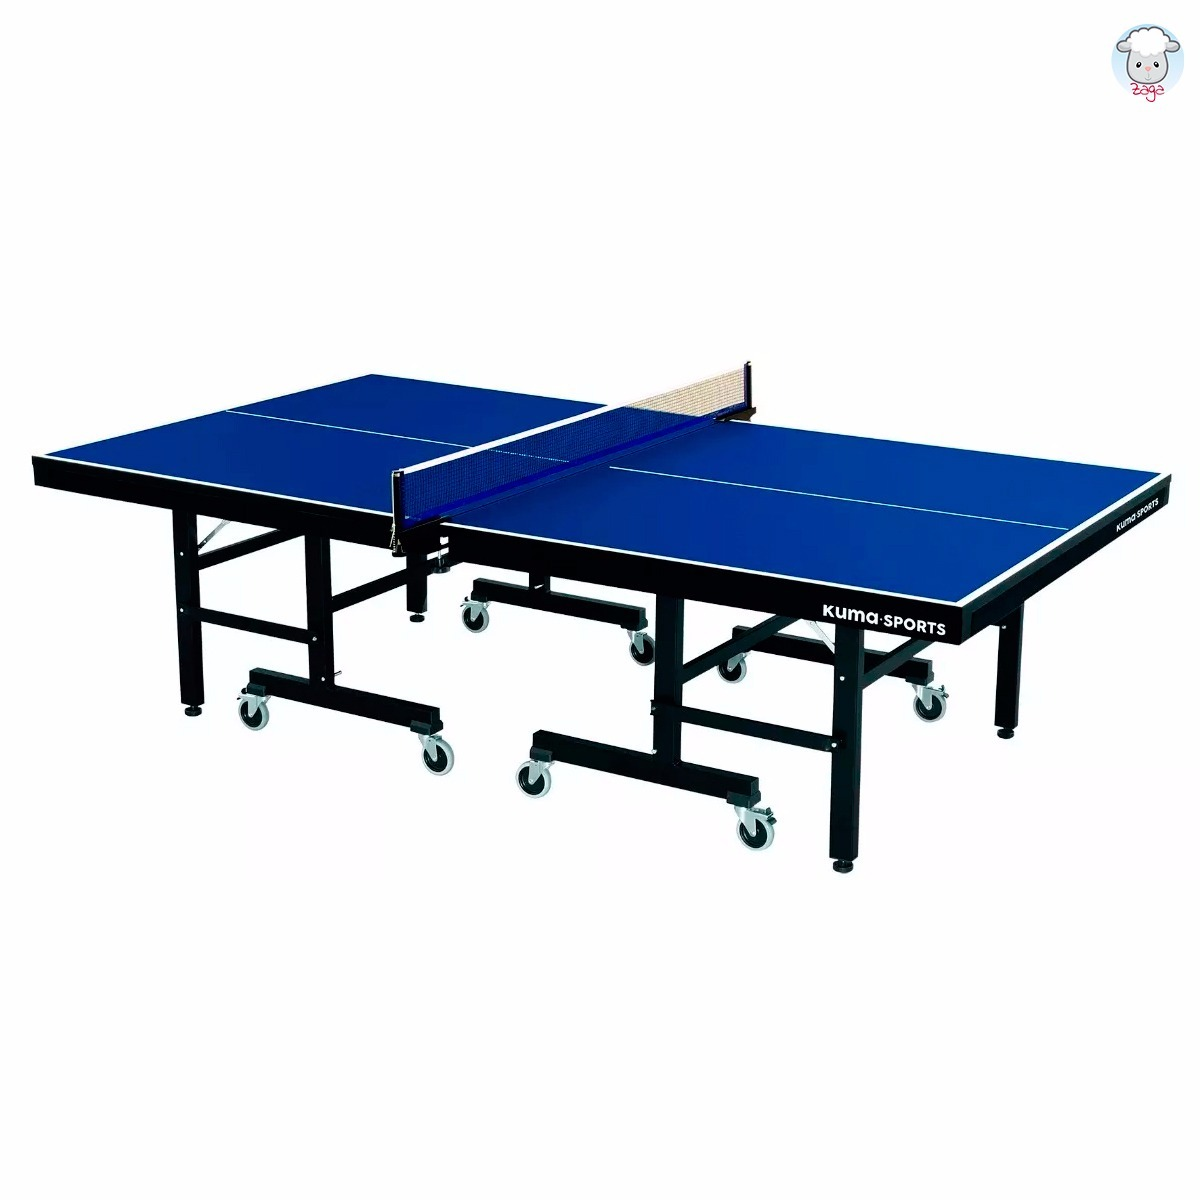 Mesa Ping Pong Plegable Mesa Ping Pong Plegable Red Kuma Sports 274x152cm